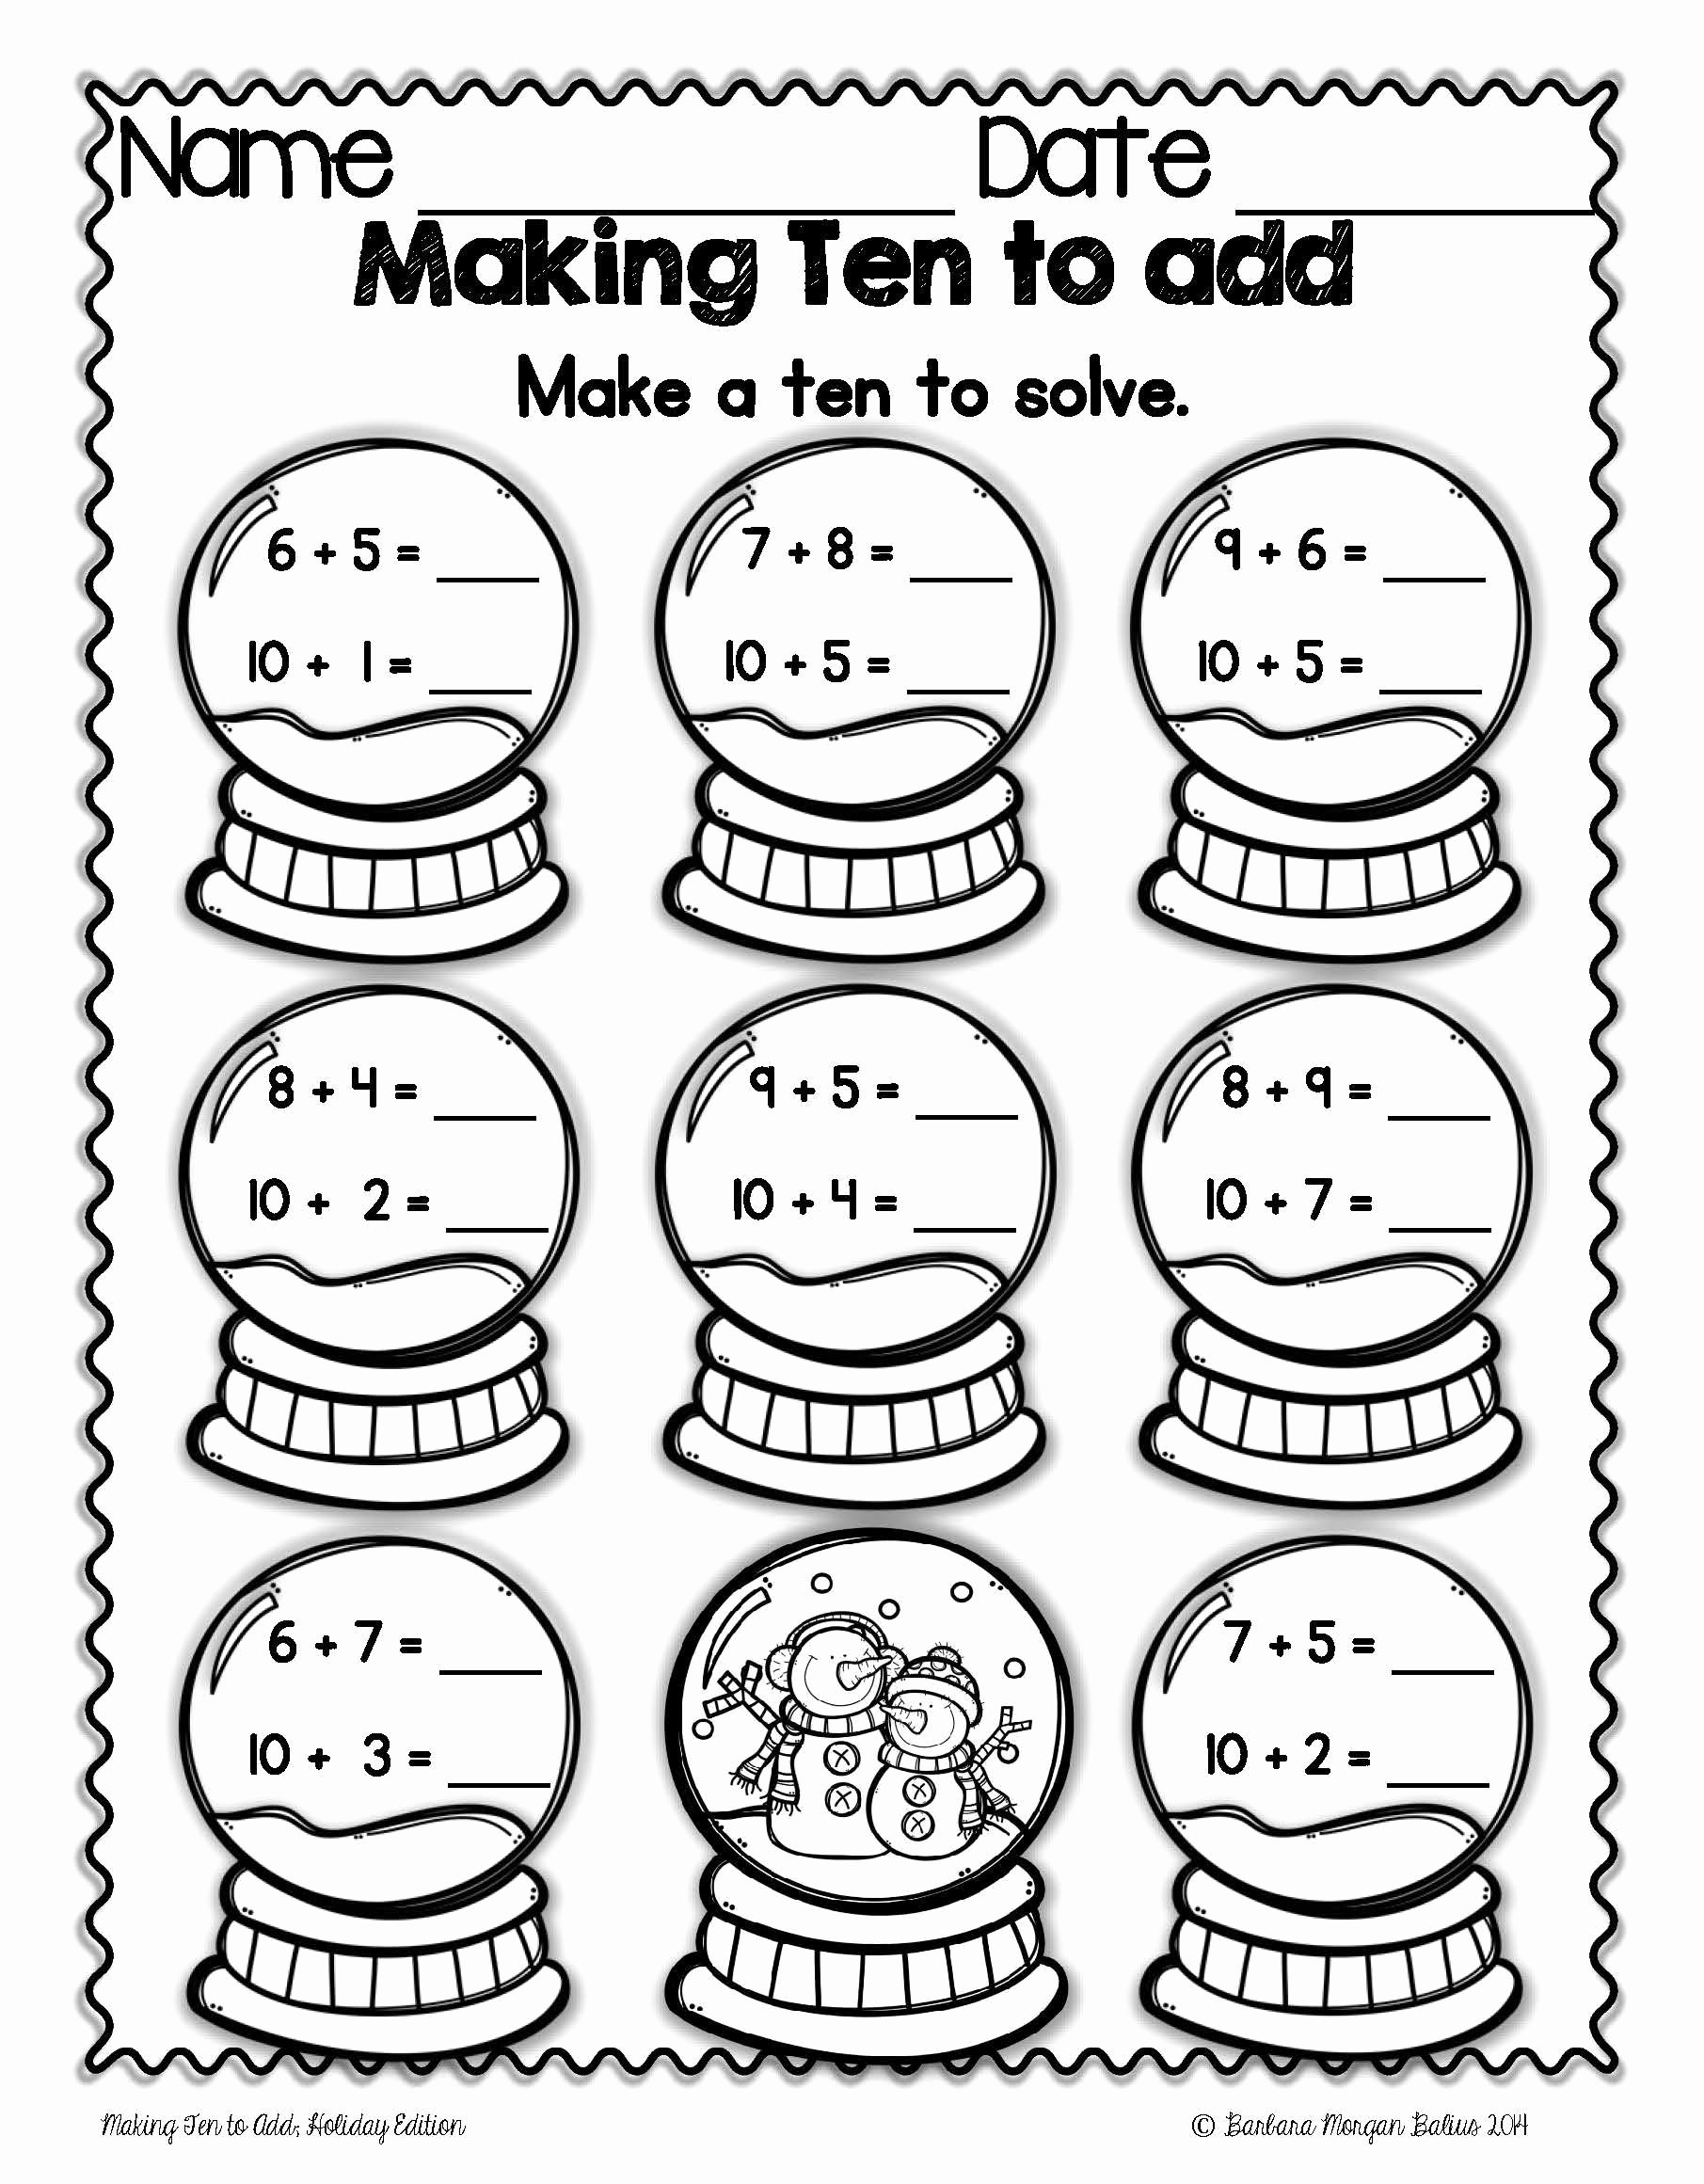 Beginning Multiplication Worksheets Awesome Worksheets Multiplication Worksheets Hiddenfashionhistory